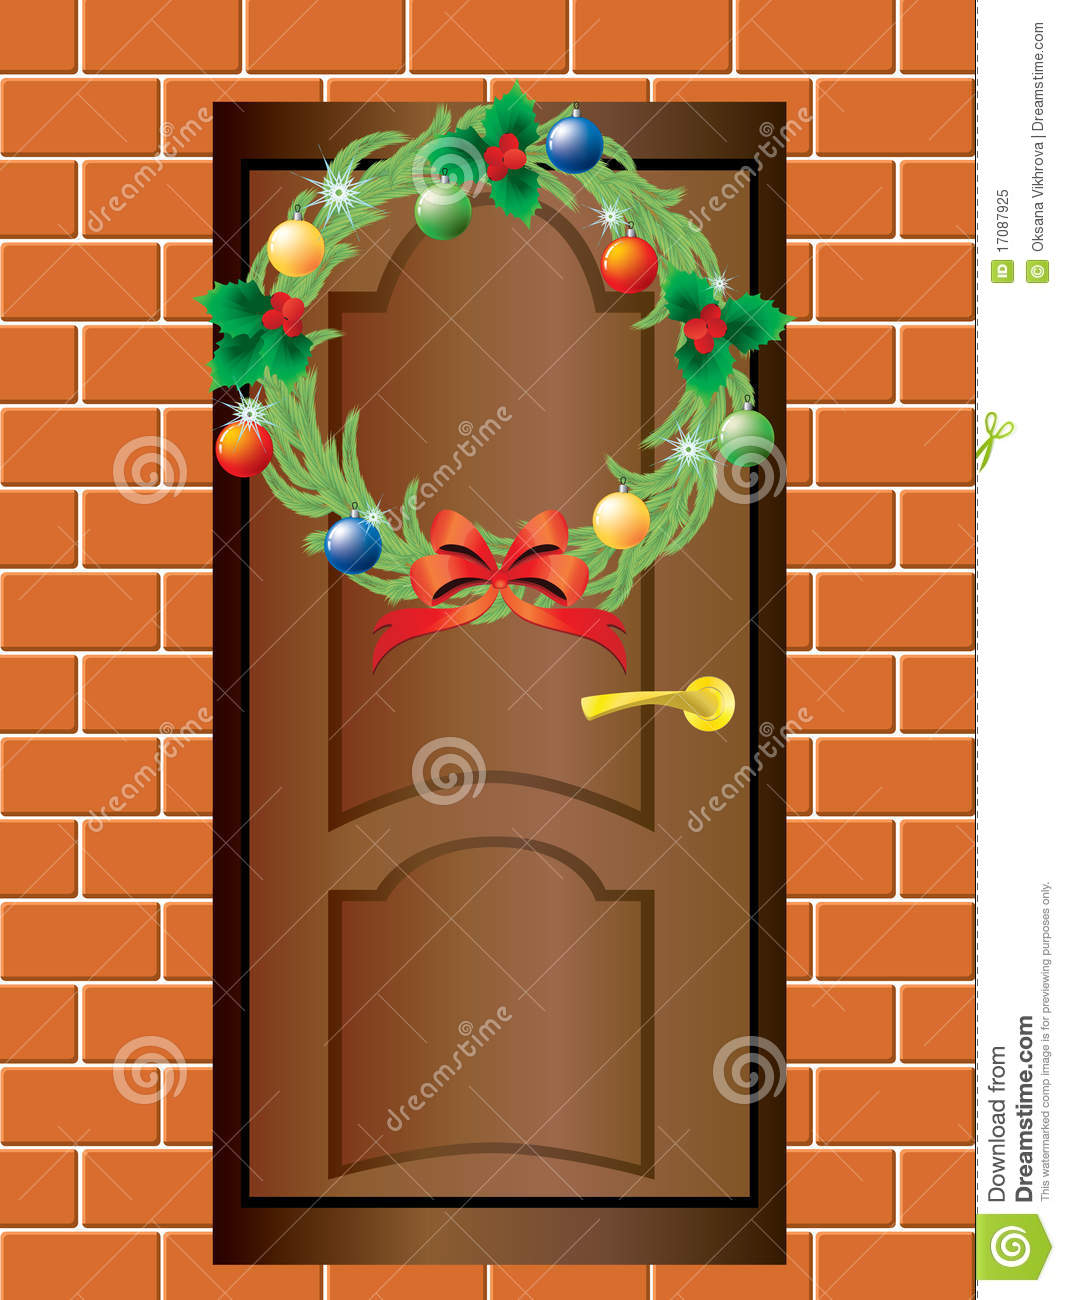 Christmas Wreath And The Front Door. Royalty Free Stock Photo.